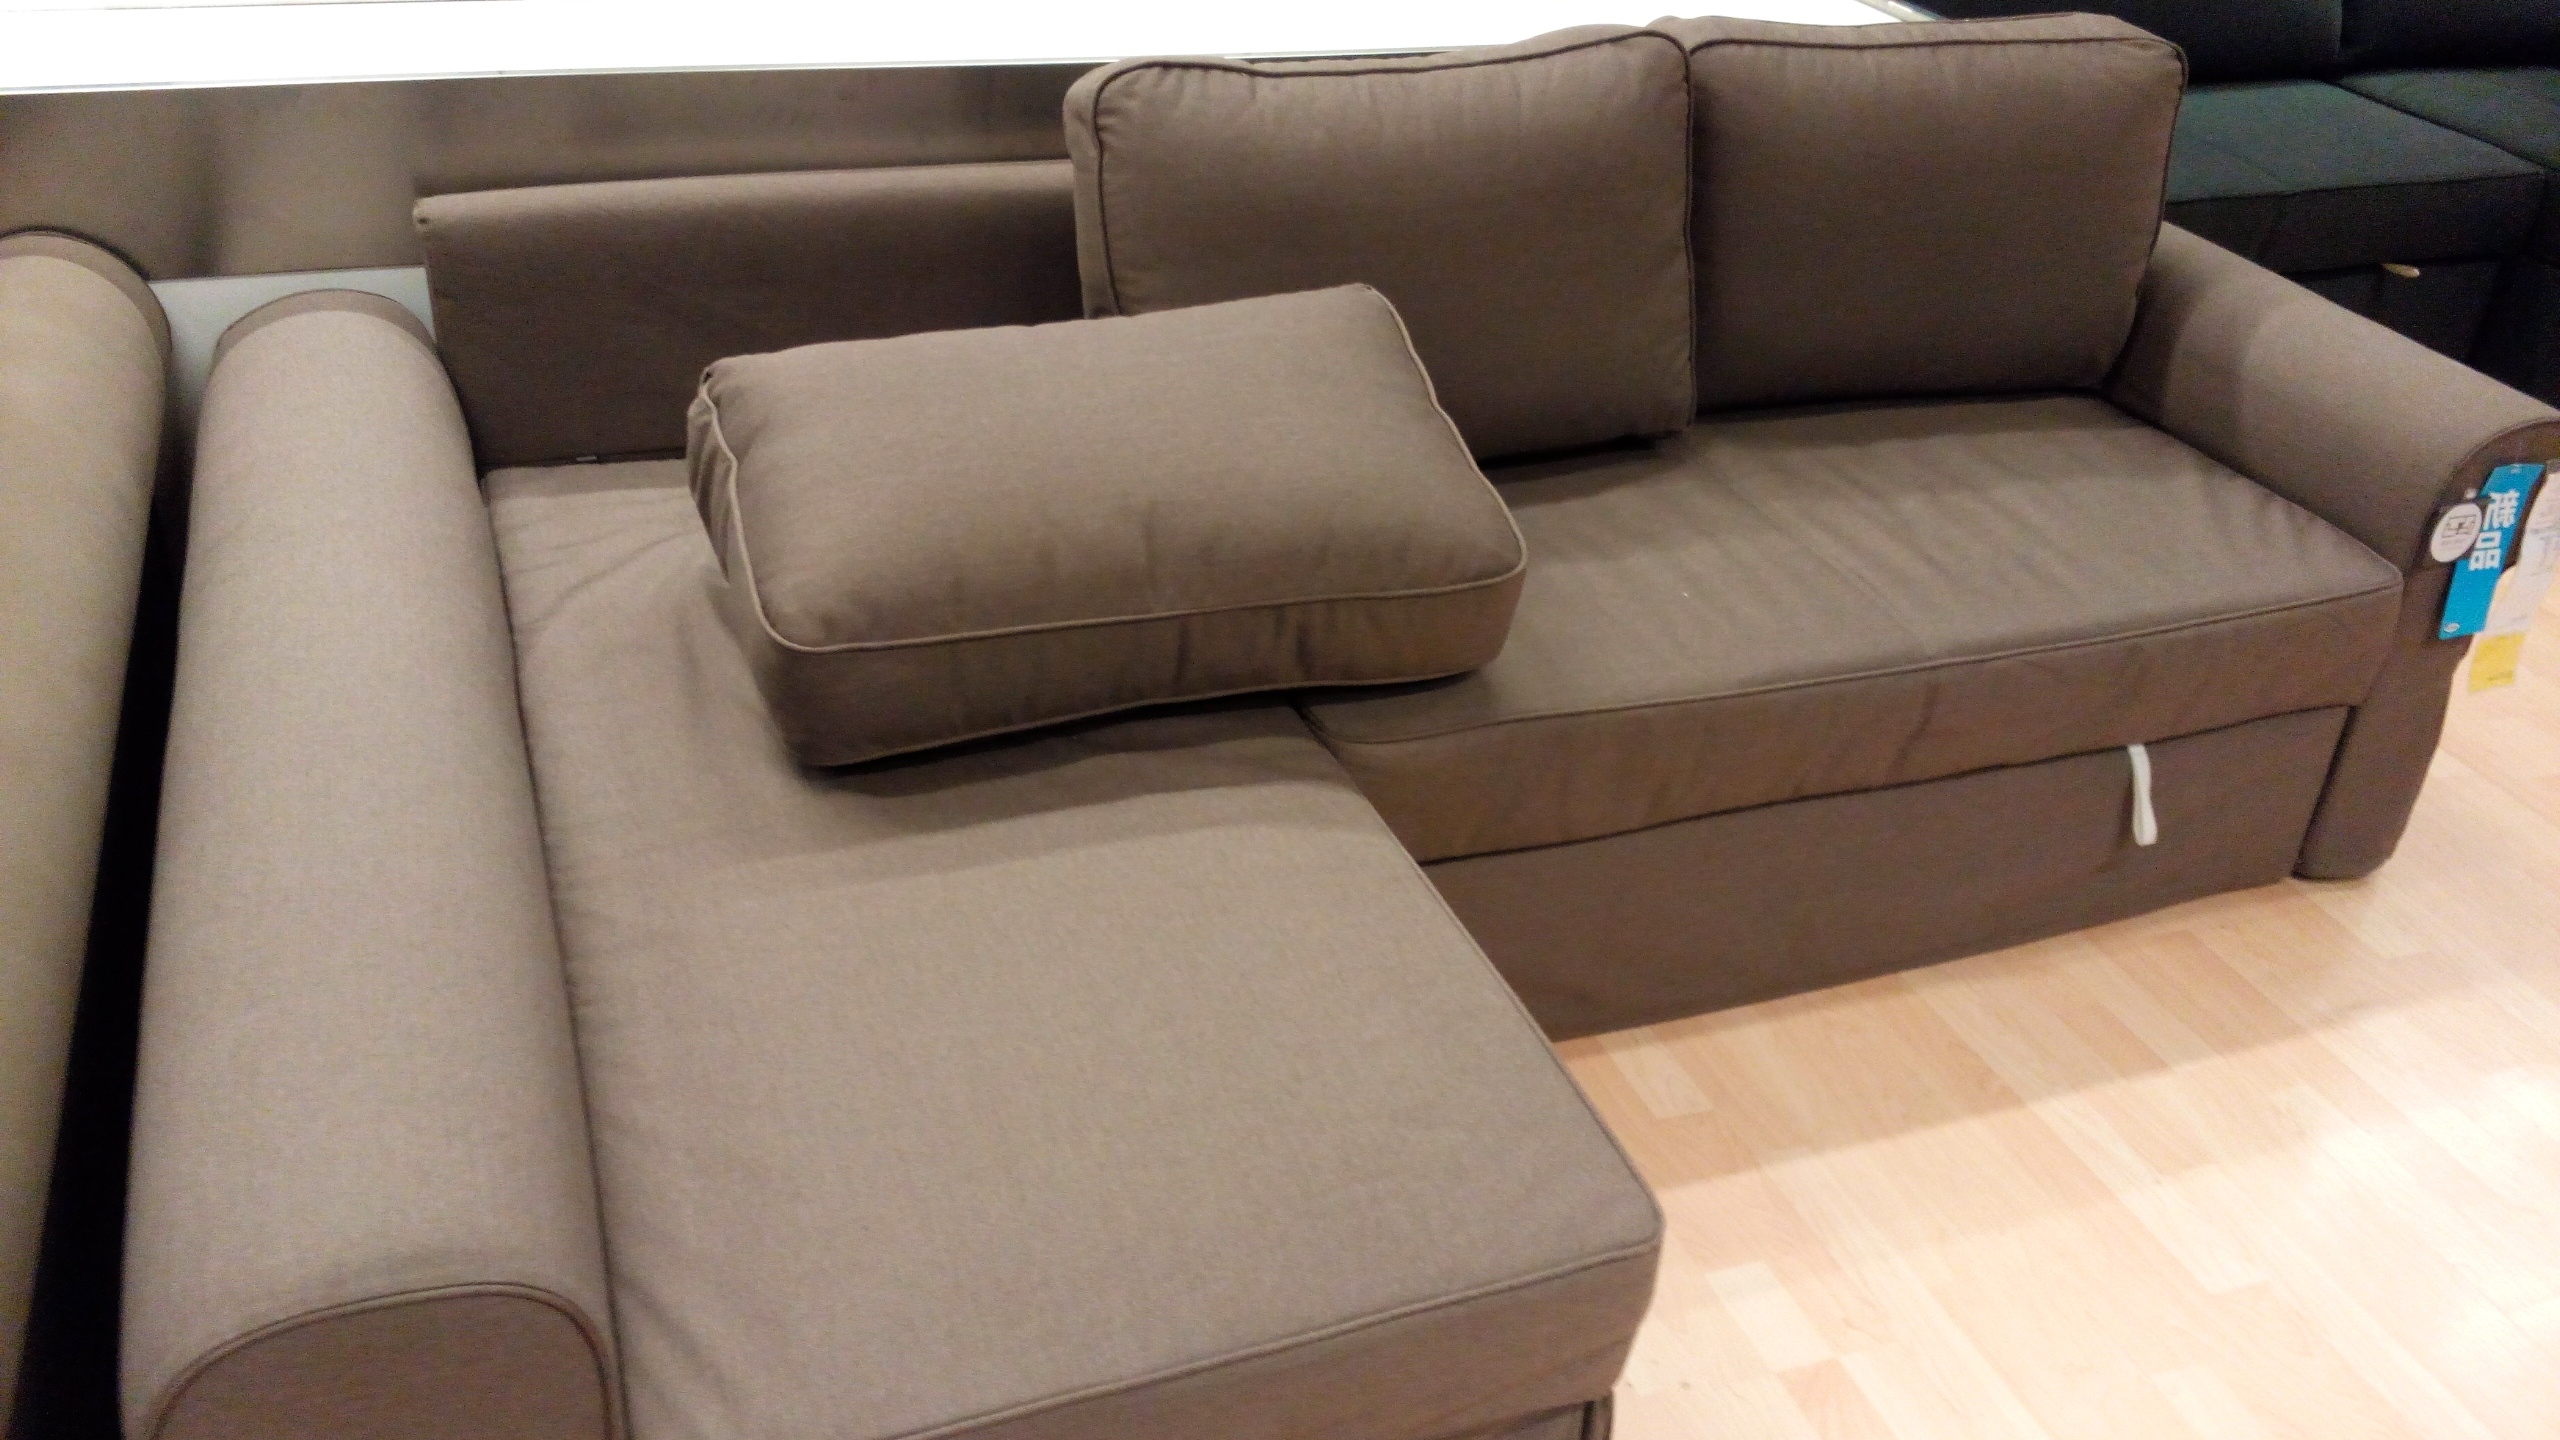 Fashionable Sofa Beds With Chaise Lounge Within Ikea Vilasund And Backabro Review – Return Of The Sofa Bed Clones! (View 3 of 15)